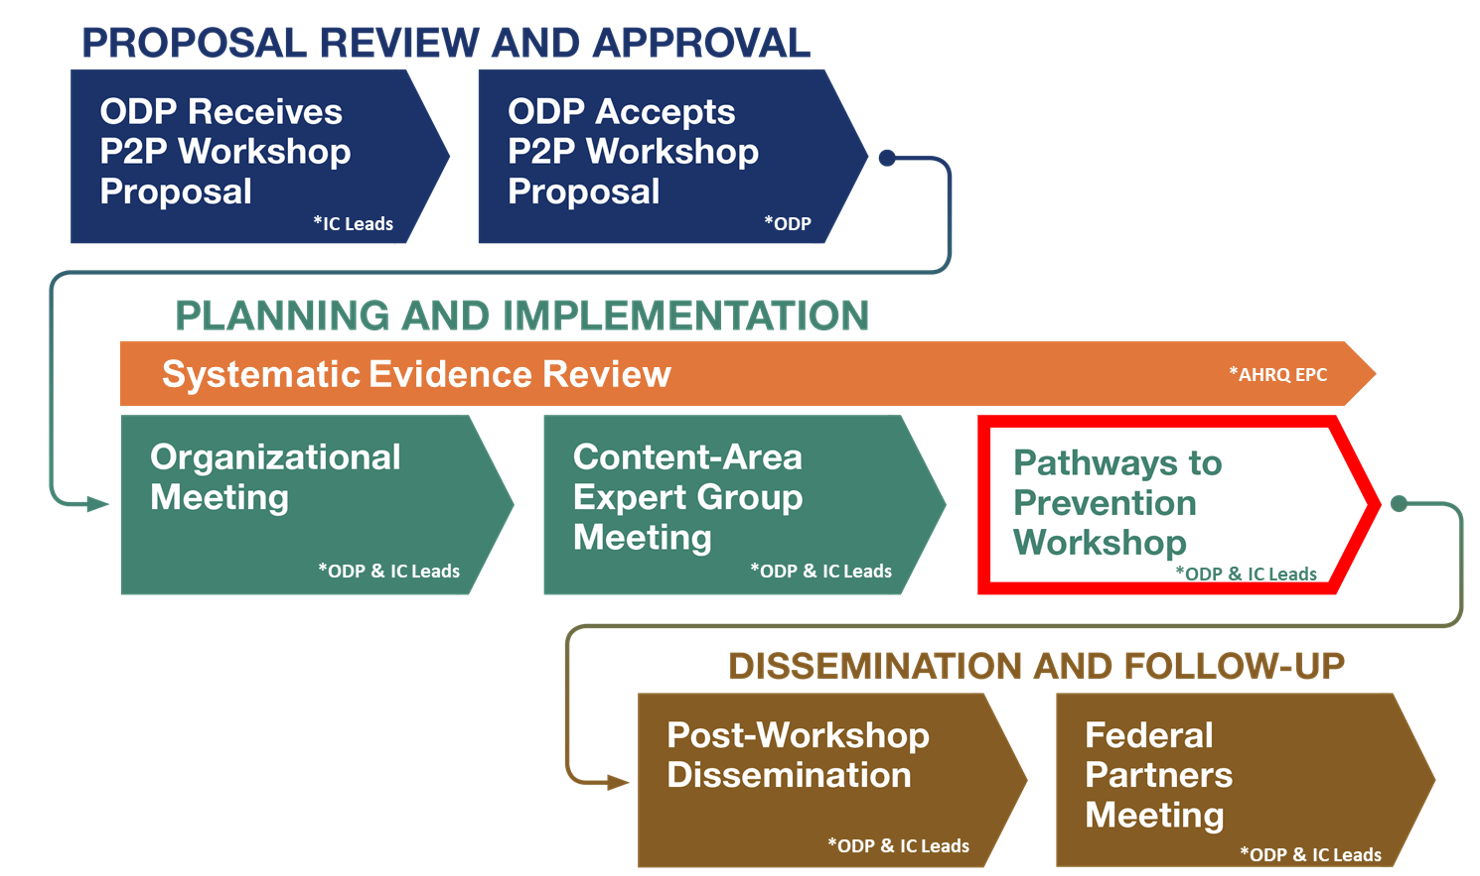 The P2P Workshop planning process starts with proposal review and approval. After the ODP receives and accepts a proposal, it moves to the planning and implementation phase. During this phase a systematic evidence review is conducted, the Organizational Meeting and Content-Area Expert Group Meeting are held, then the Pathways to Prevention workshop takes place. After the workshop, in the dissemination and follow-up phase, the findings of the workshop are disseminated, the Federal Partners Meeting is held.